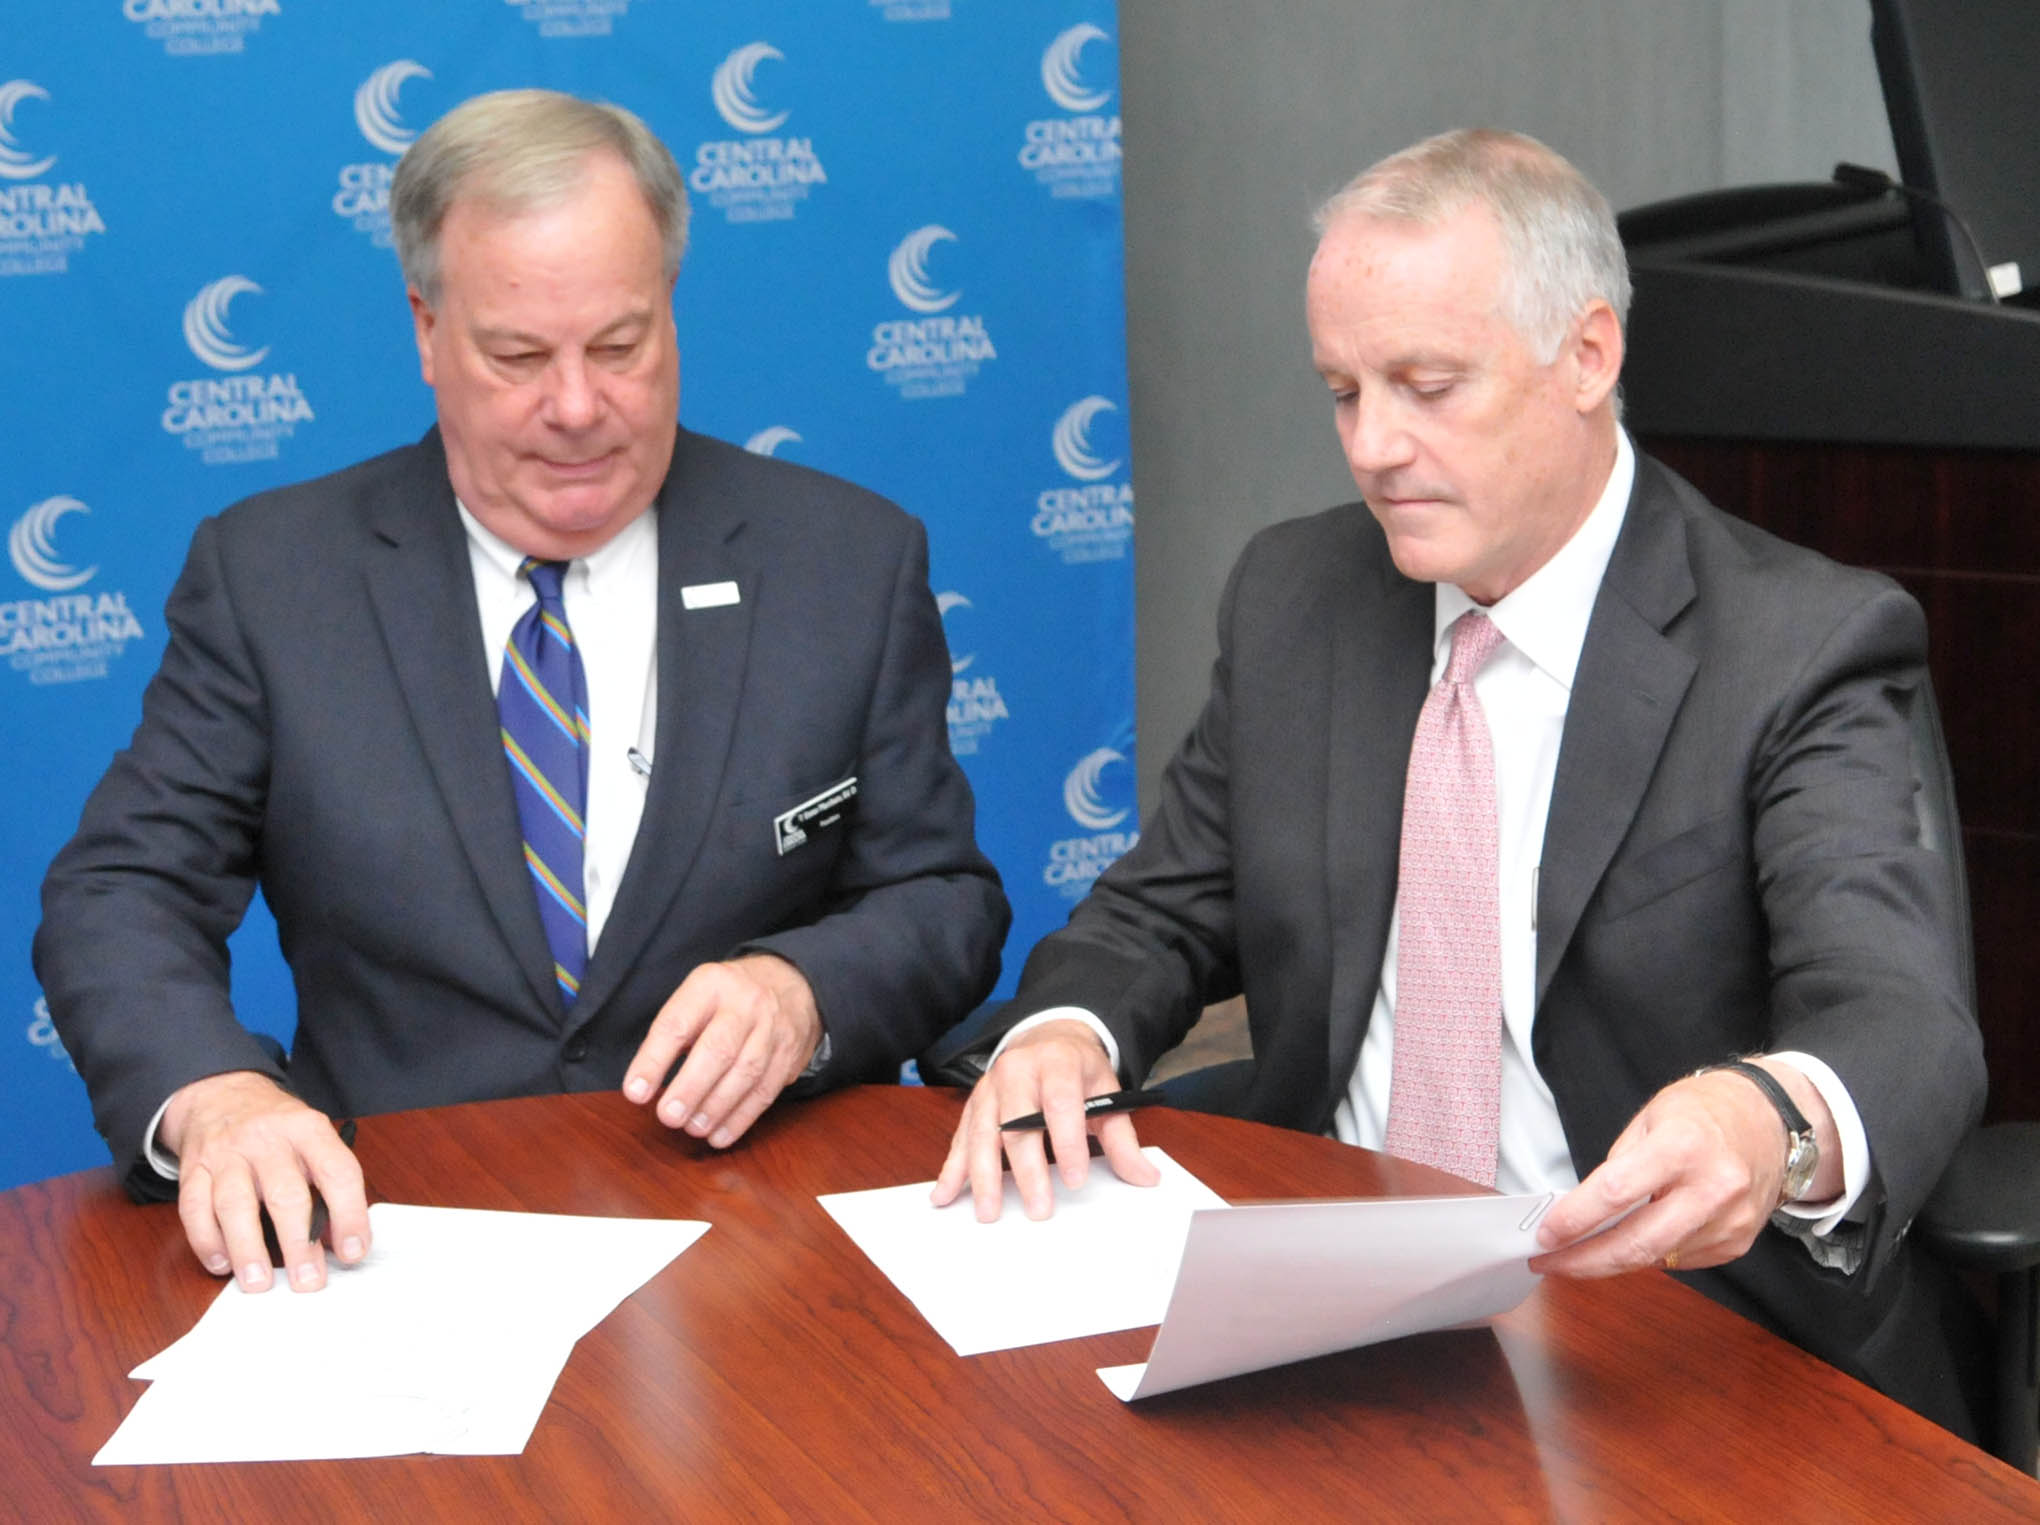 Click to enlarge,  Central Carolina Community College President Dr. T. Eston Marchant (left) and Dr. Louis D. Hunt, Senior Vice Provost for Enrollment Management at NC State University, sign a Memorandum of Understanding that promotes both associate degree and baccalaureate degree completion by giving guaranteed admission to N.C. State for CCCC students who meet the conditions of the program.